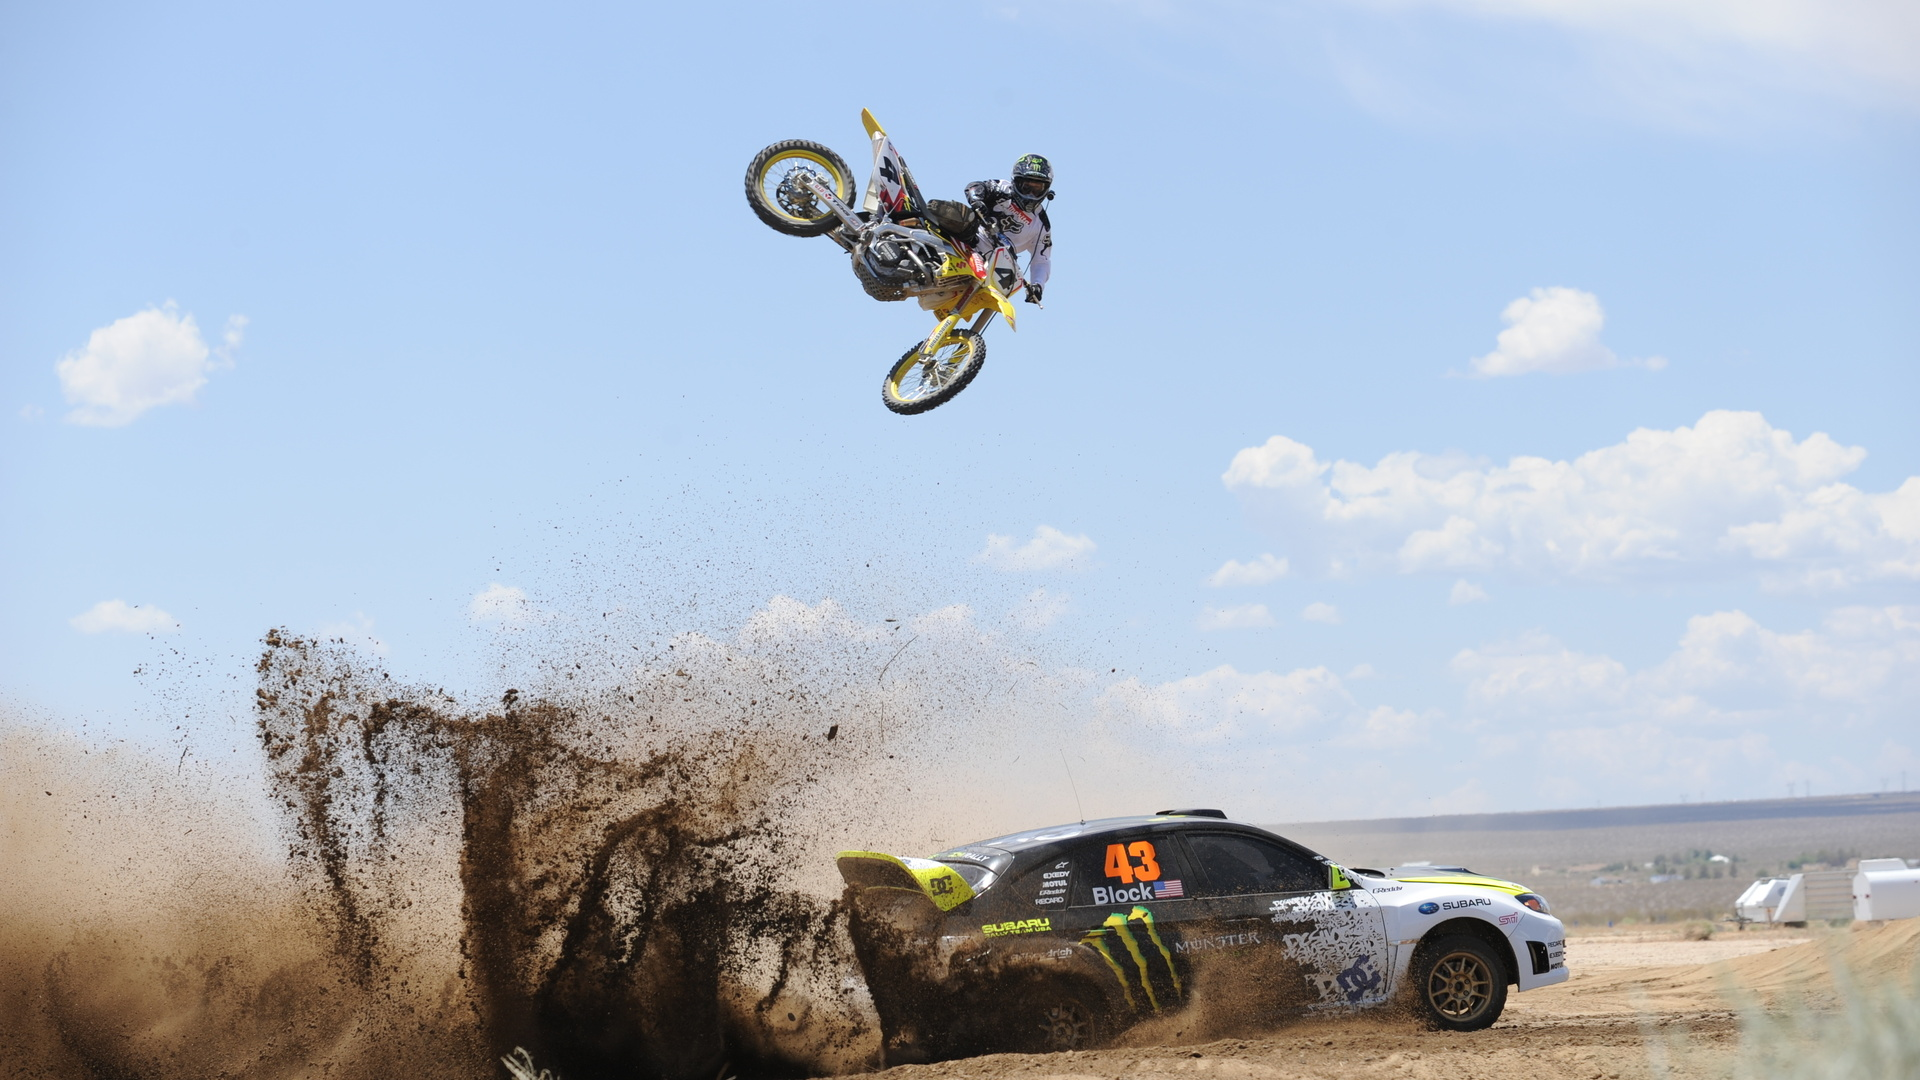 Pastrana 4k Wallpapers For Your Desktop Or Mobile Screen Free And